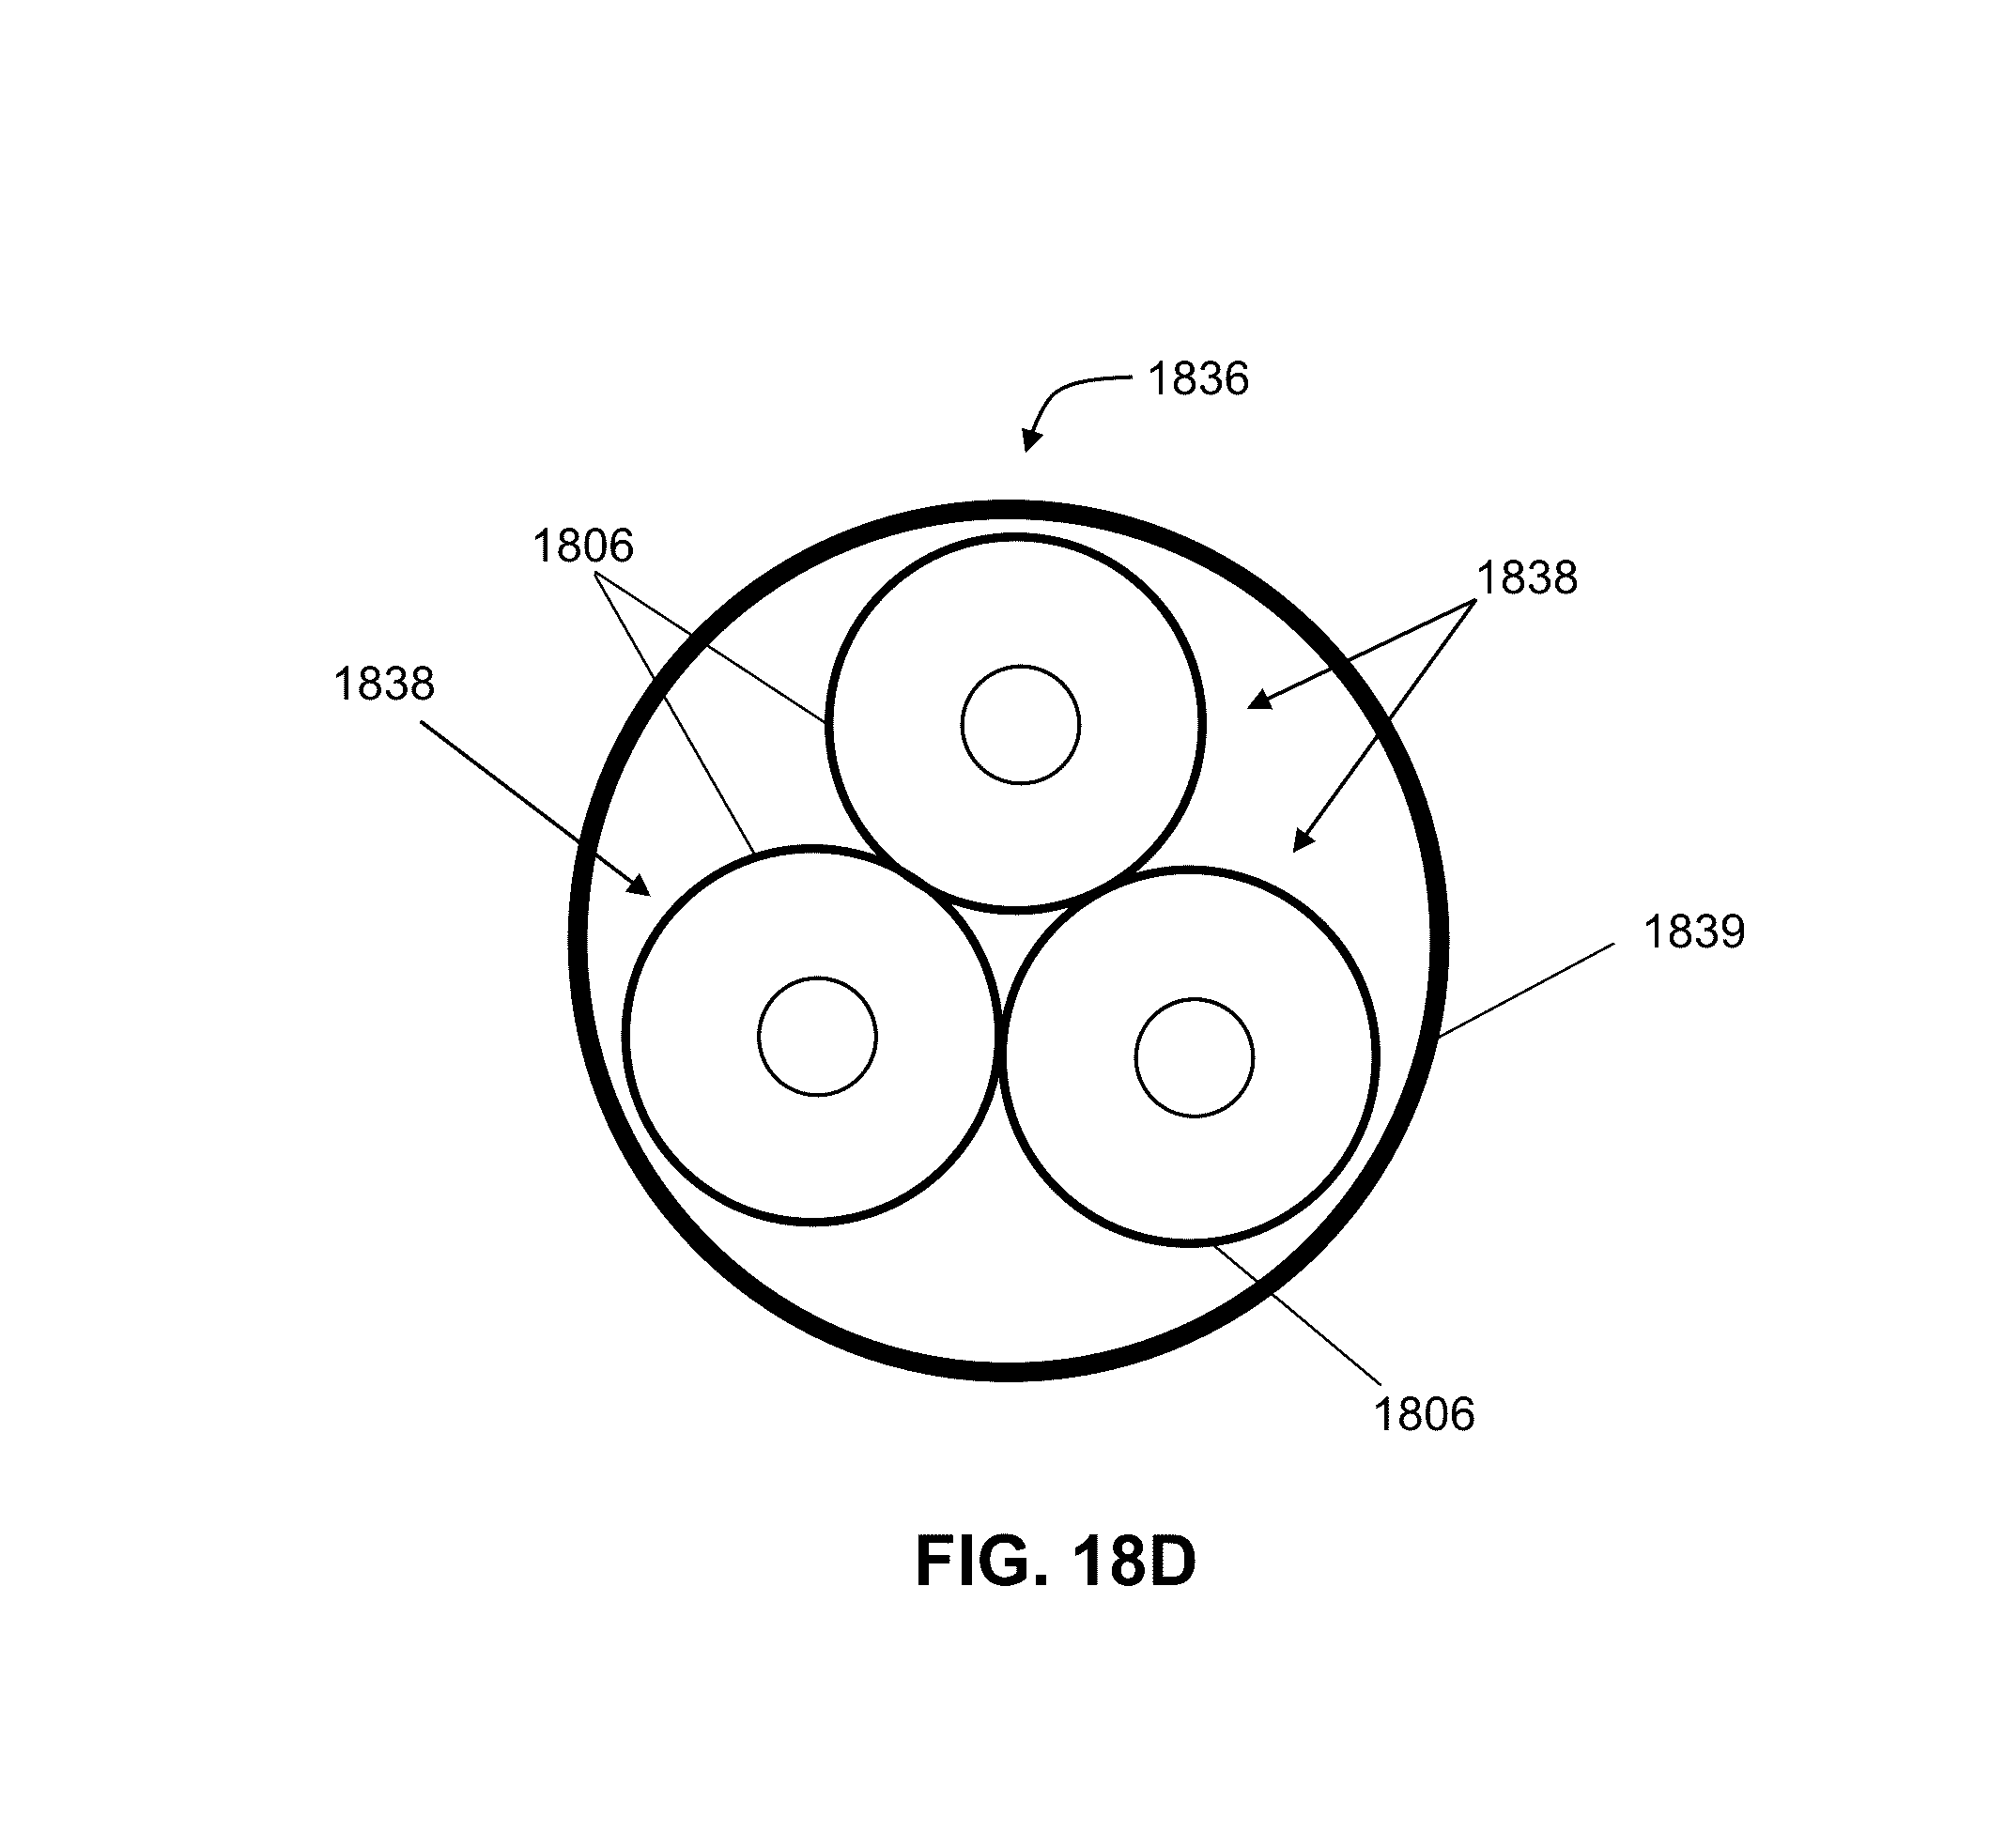 Us9509415b1 methods and apparatus for inducing a fundamental wave mode on a transmission medium patents